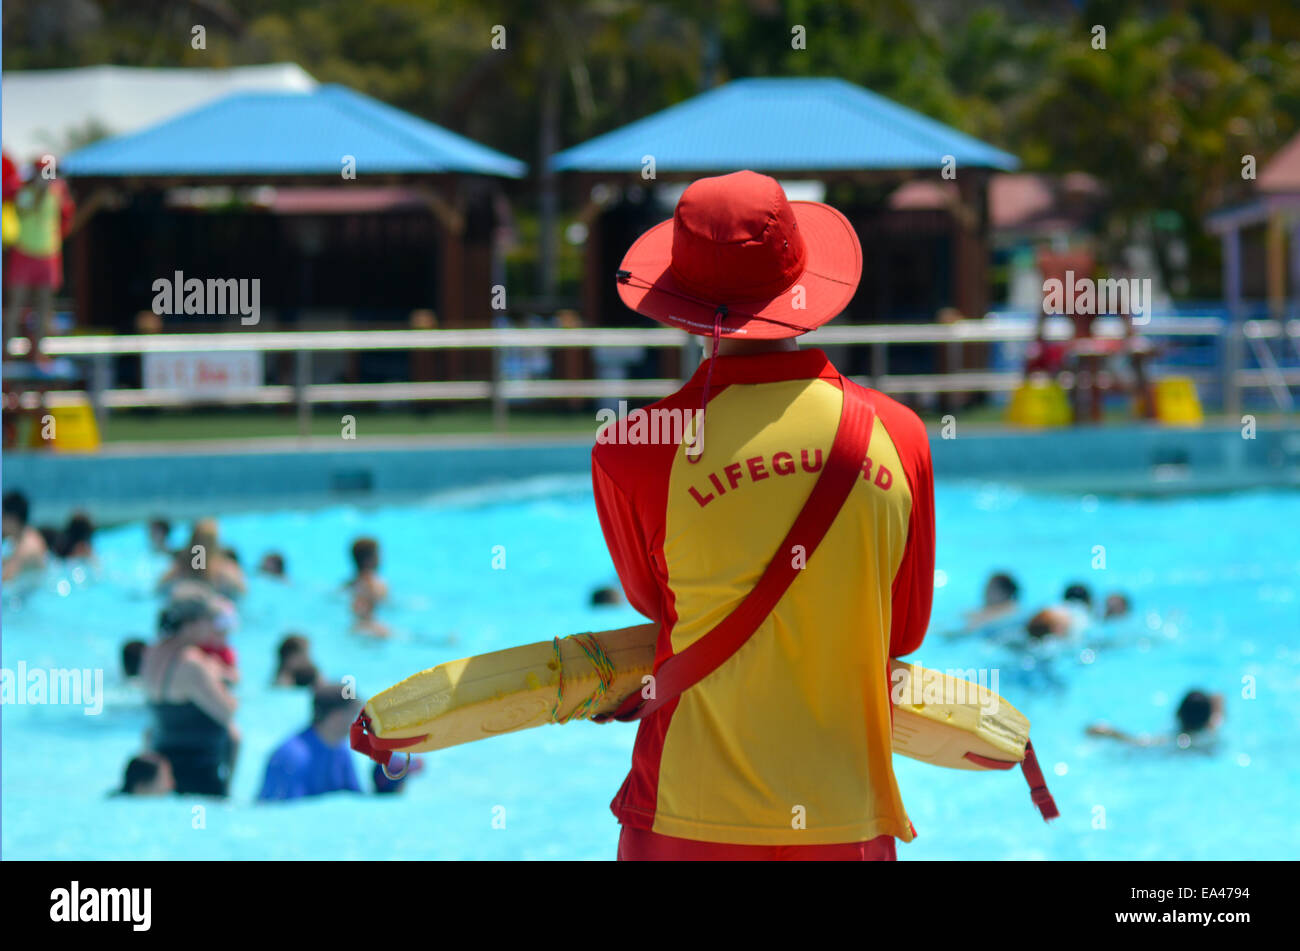 GOLD COAST, AUS - OCT 30 2014:Australian Lifeguard in Wet'n'Wild Gold Coast Australia.They are world-renown - Stock Image